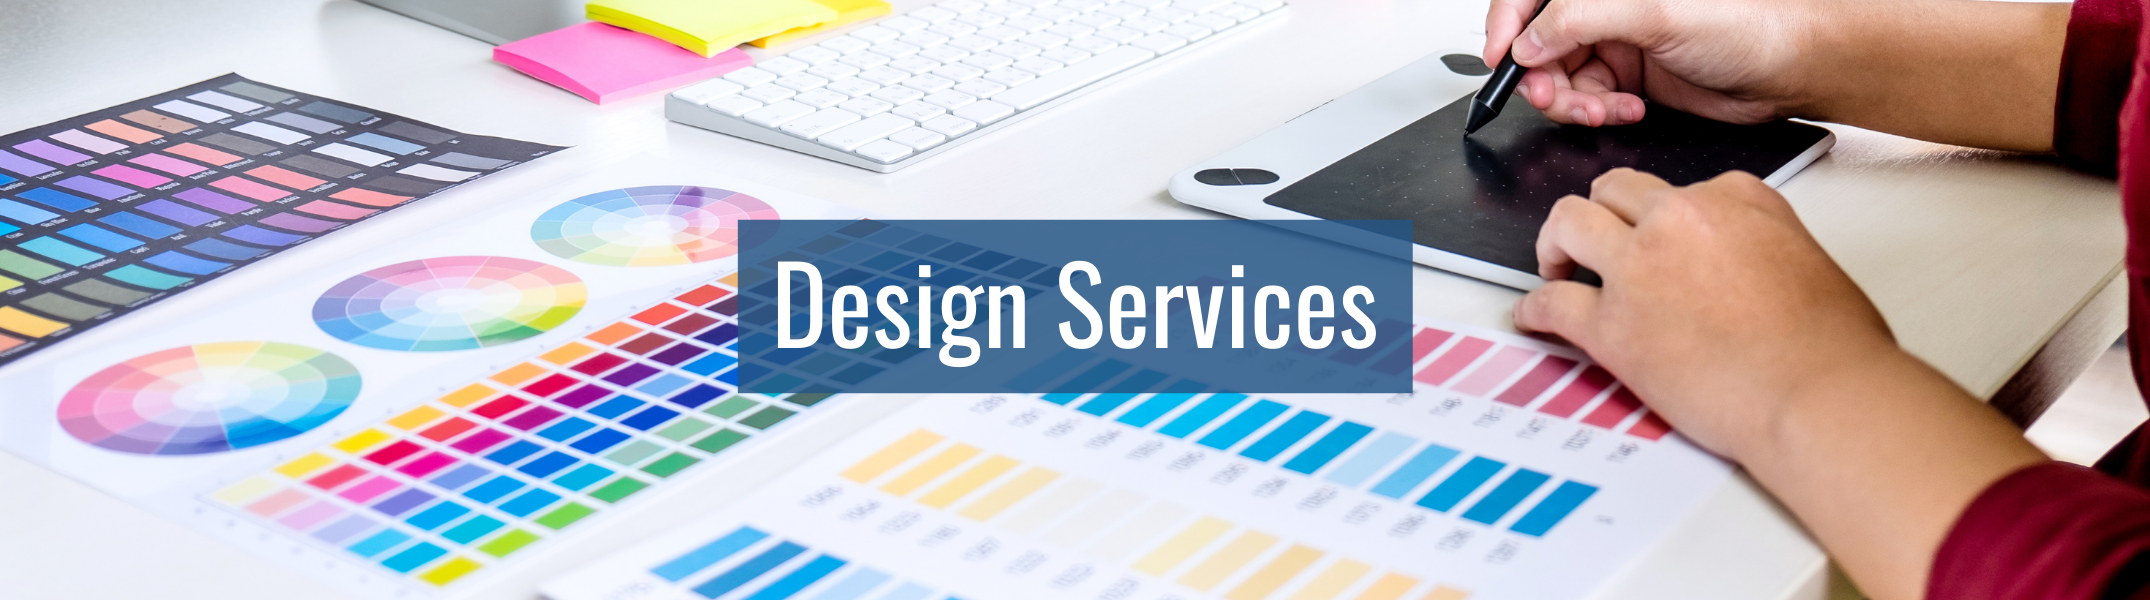 Design Services in Boston